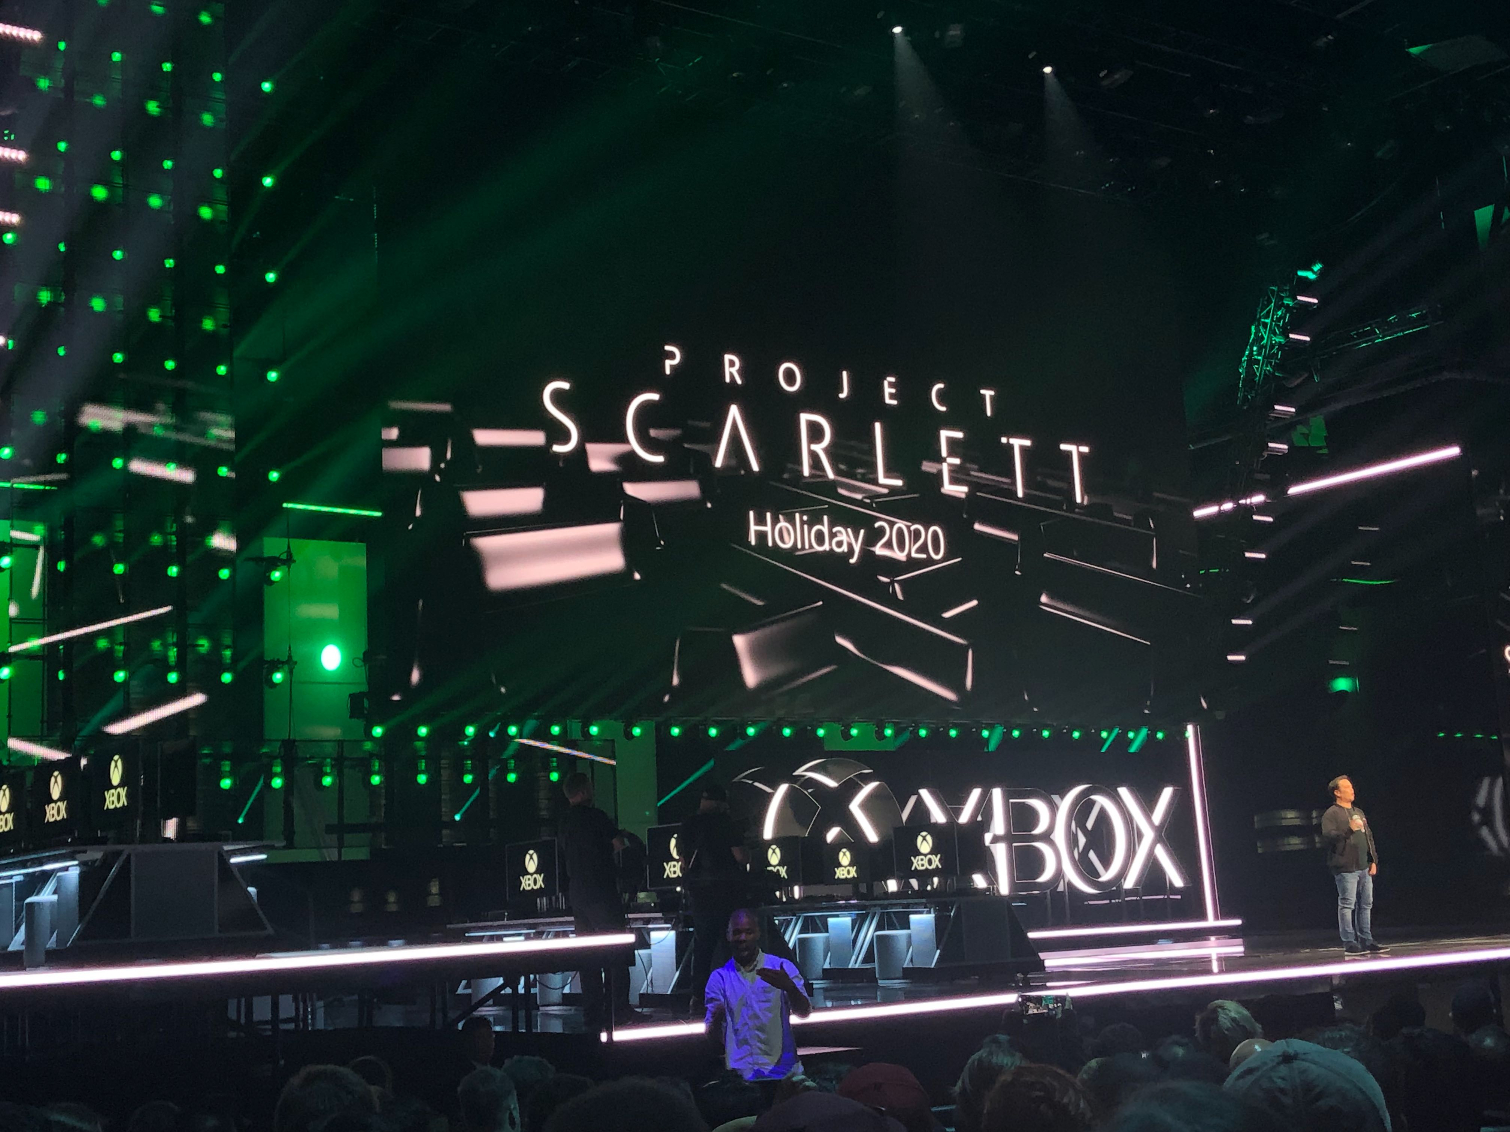 Xbox Project Scarlett: Specs, Features and More | Tom's Guide